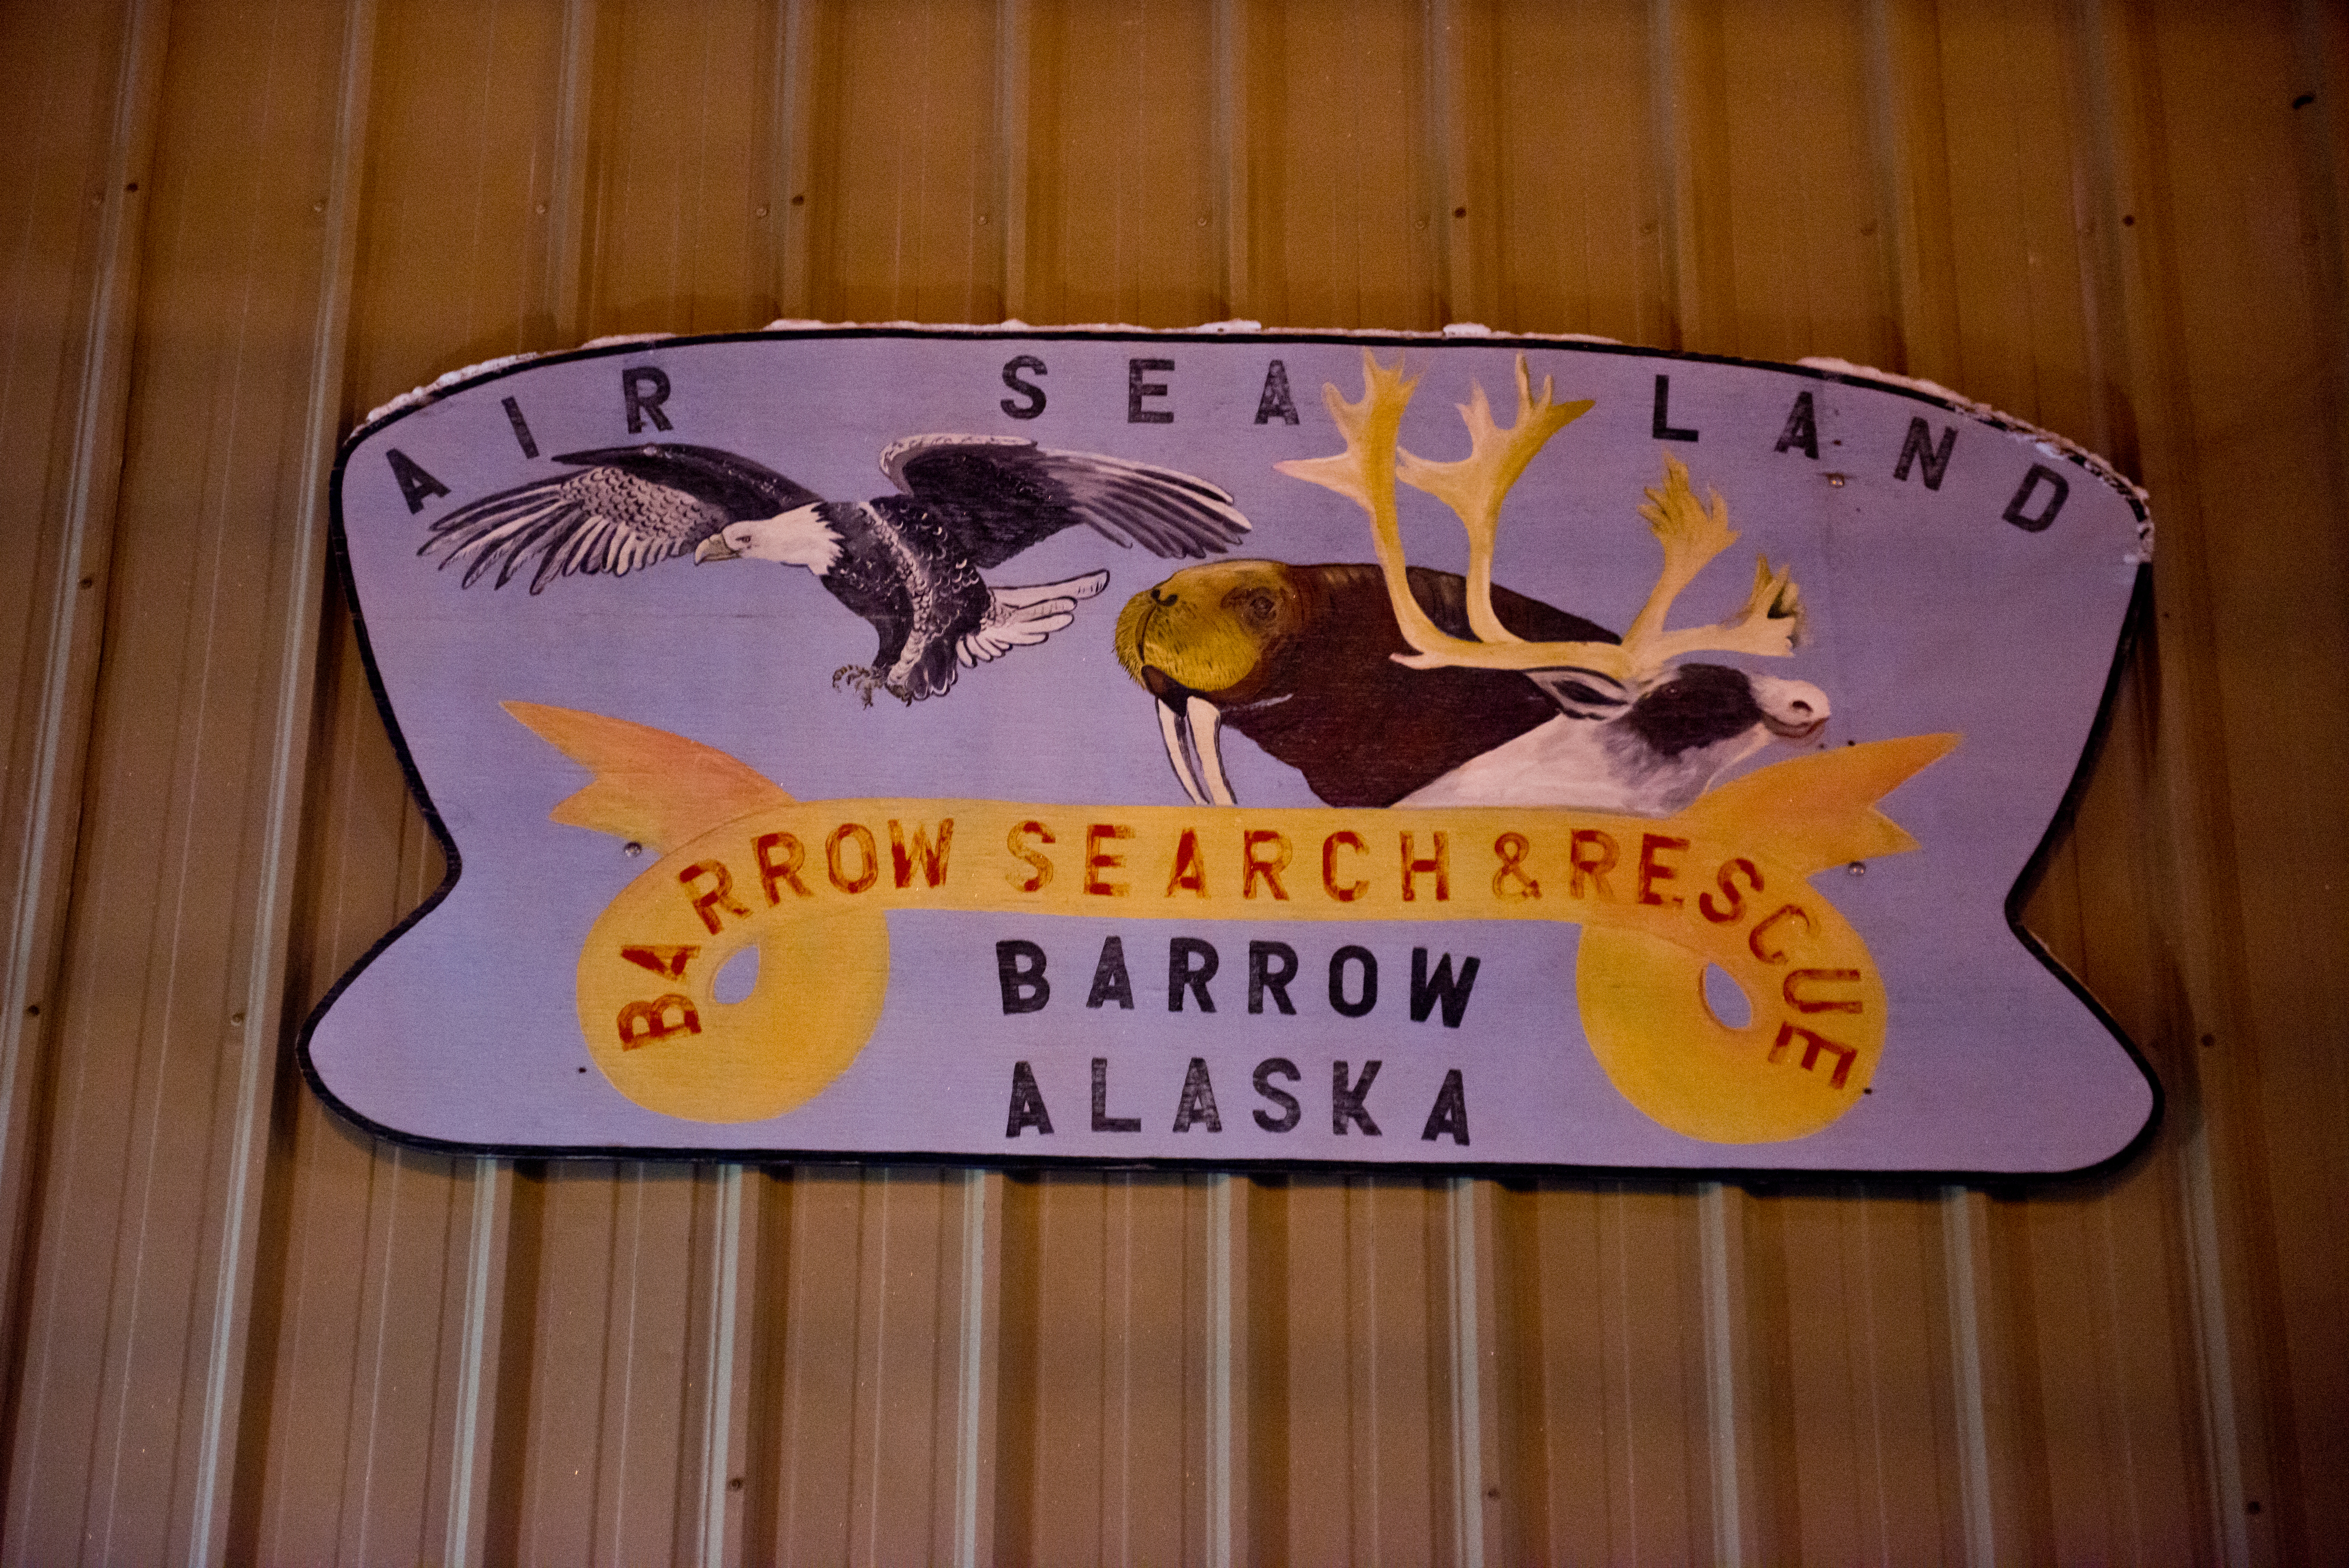 A sign marks an equipment garage in Utqiagvik for Barrow Search and Rescue. When someone is lost or stranded in the wild lands within 25 miles of Utqiagvik, volunteers from Barrow Search and Rescue often take they lead in retrieving them. The group also has helped map camps and cabins in the region, stake trails between village and provide emergency beacons for travelers. Photographed on Tuesday, December 13, 2016. (Marc Lester / Alaska Dispatch News)